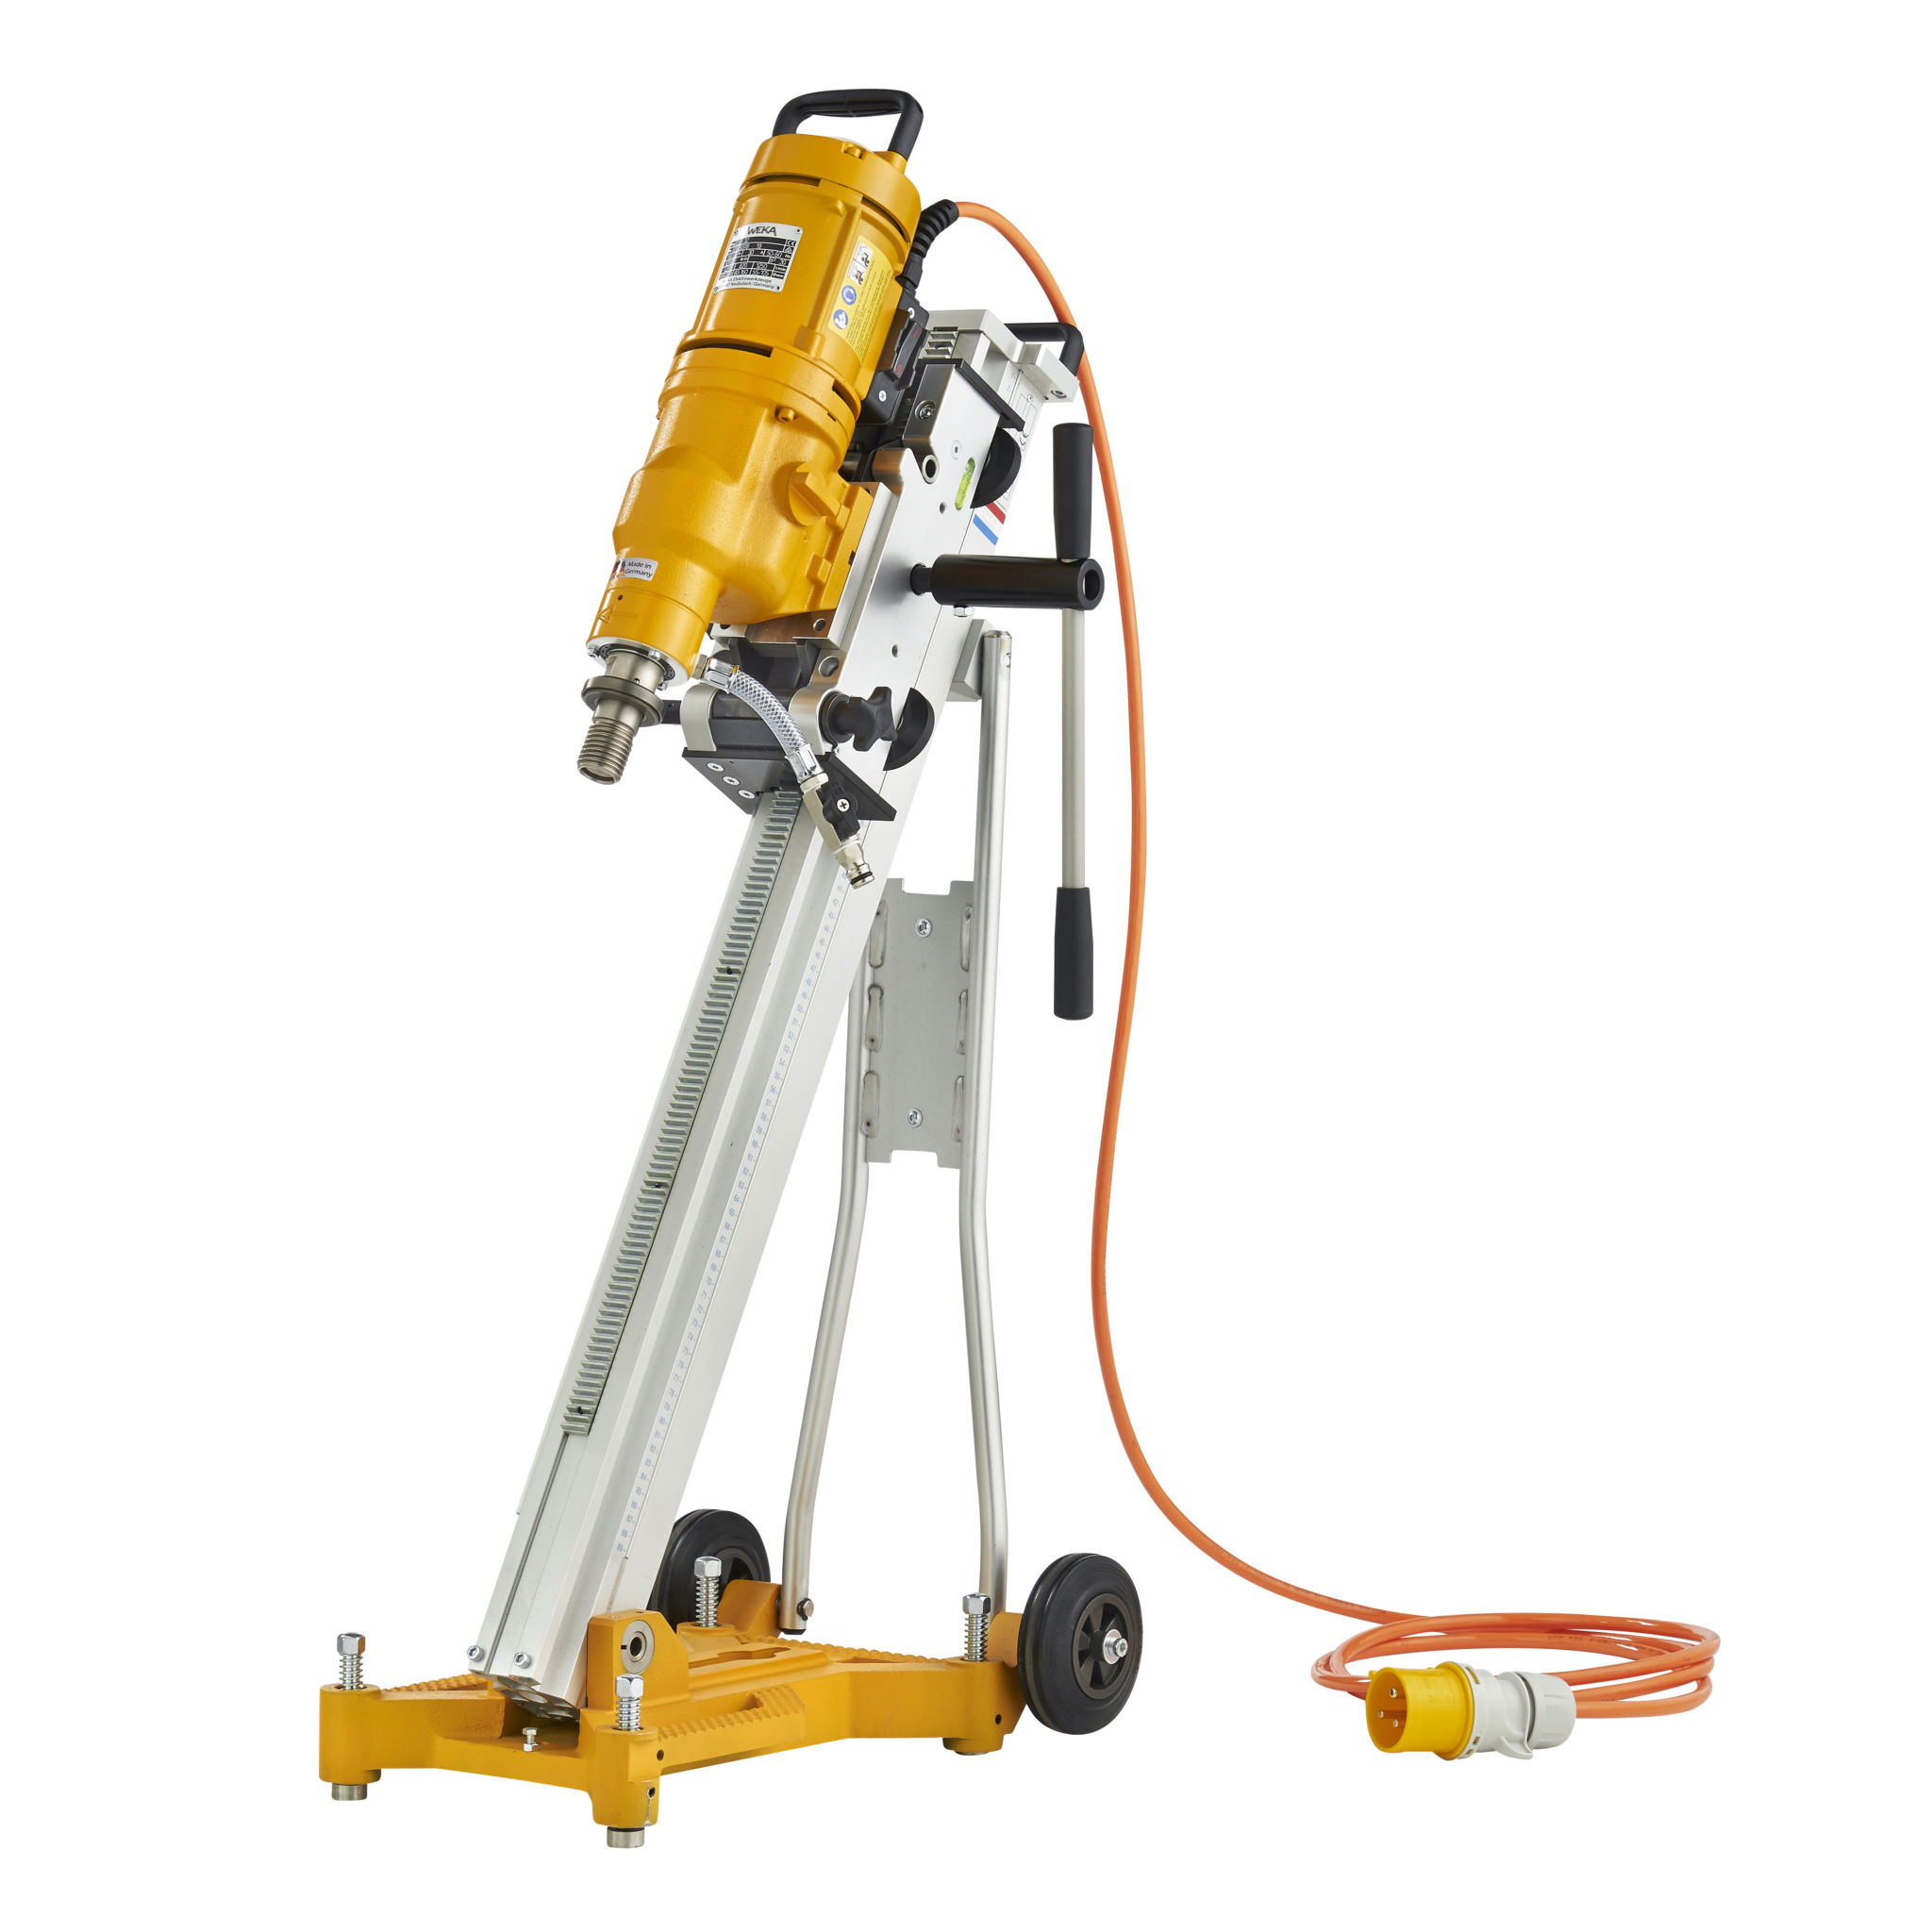 DK26 Wet Diamond Core Drill With Rig